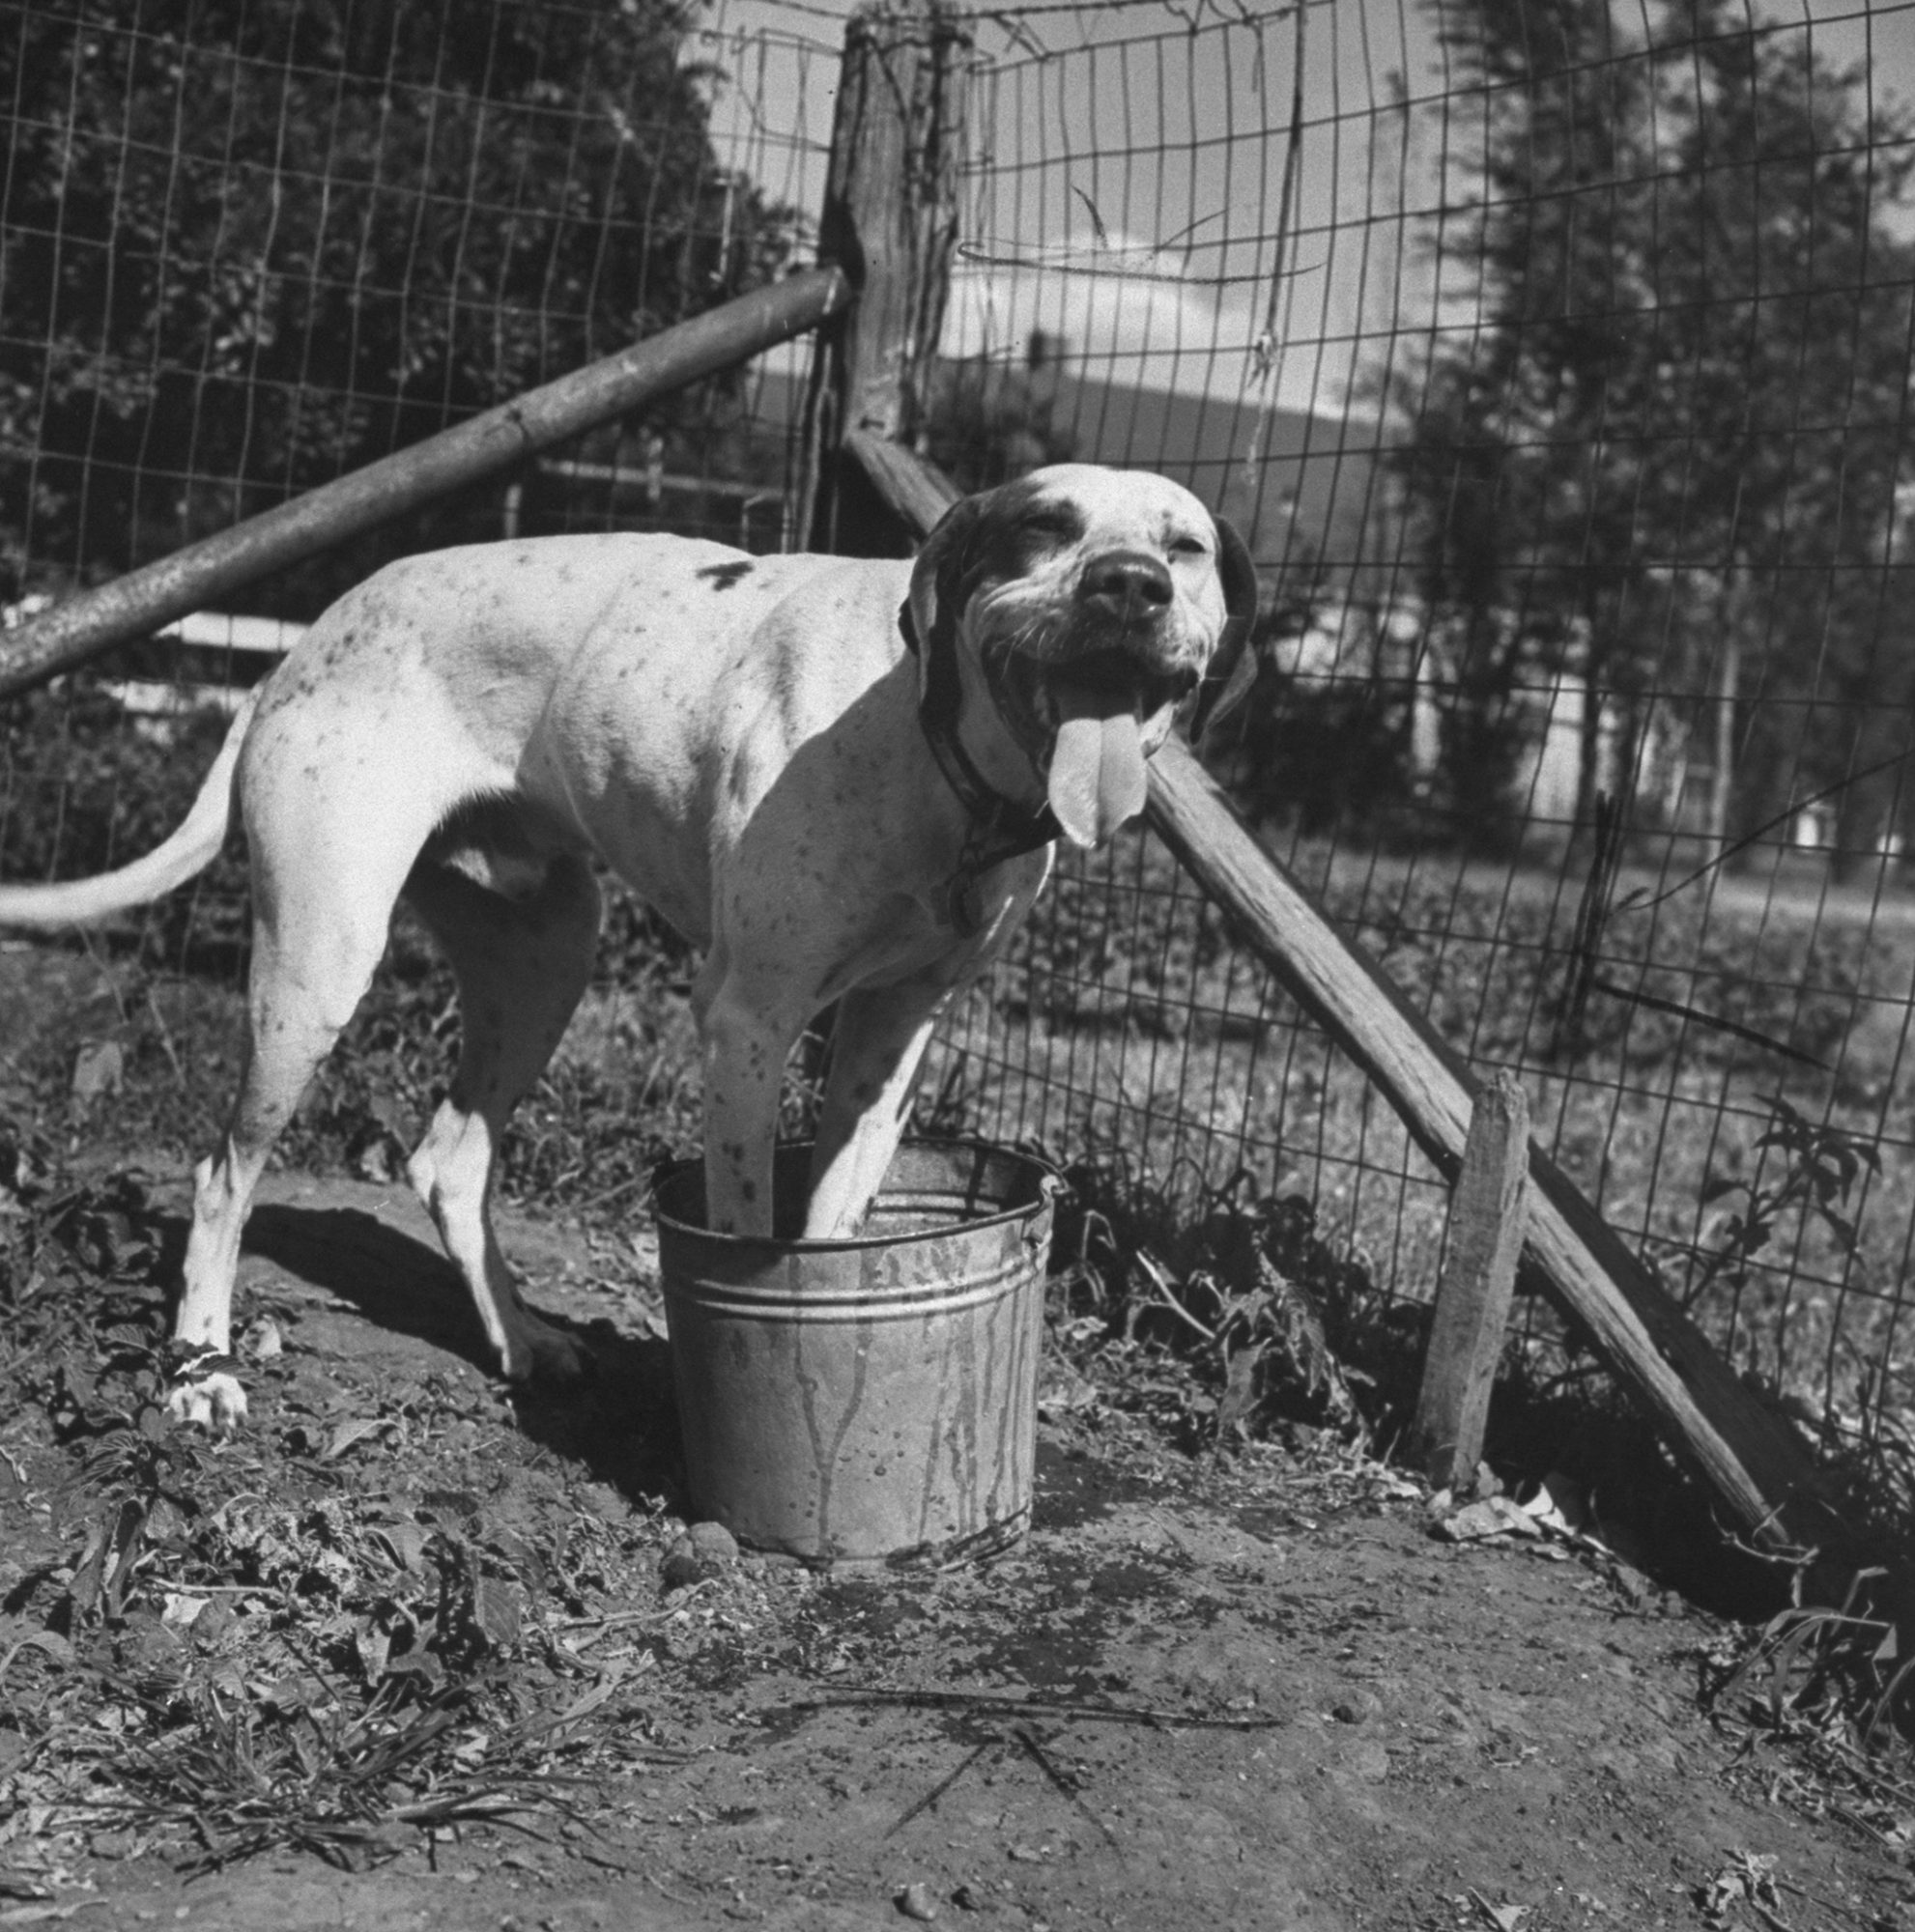 Dog Standing in Water Bucket